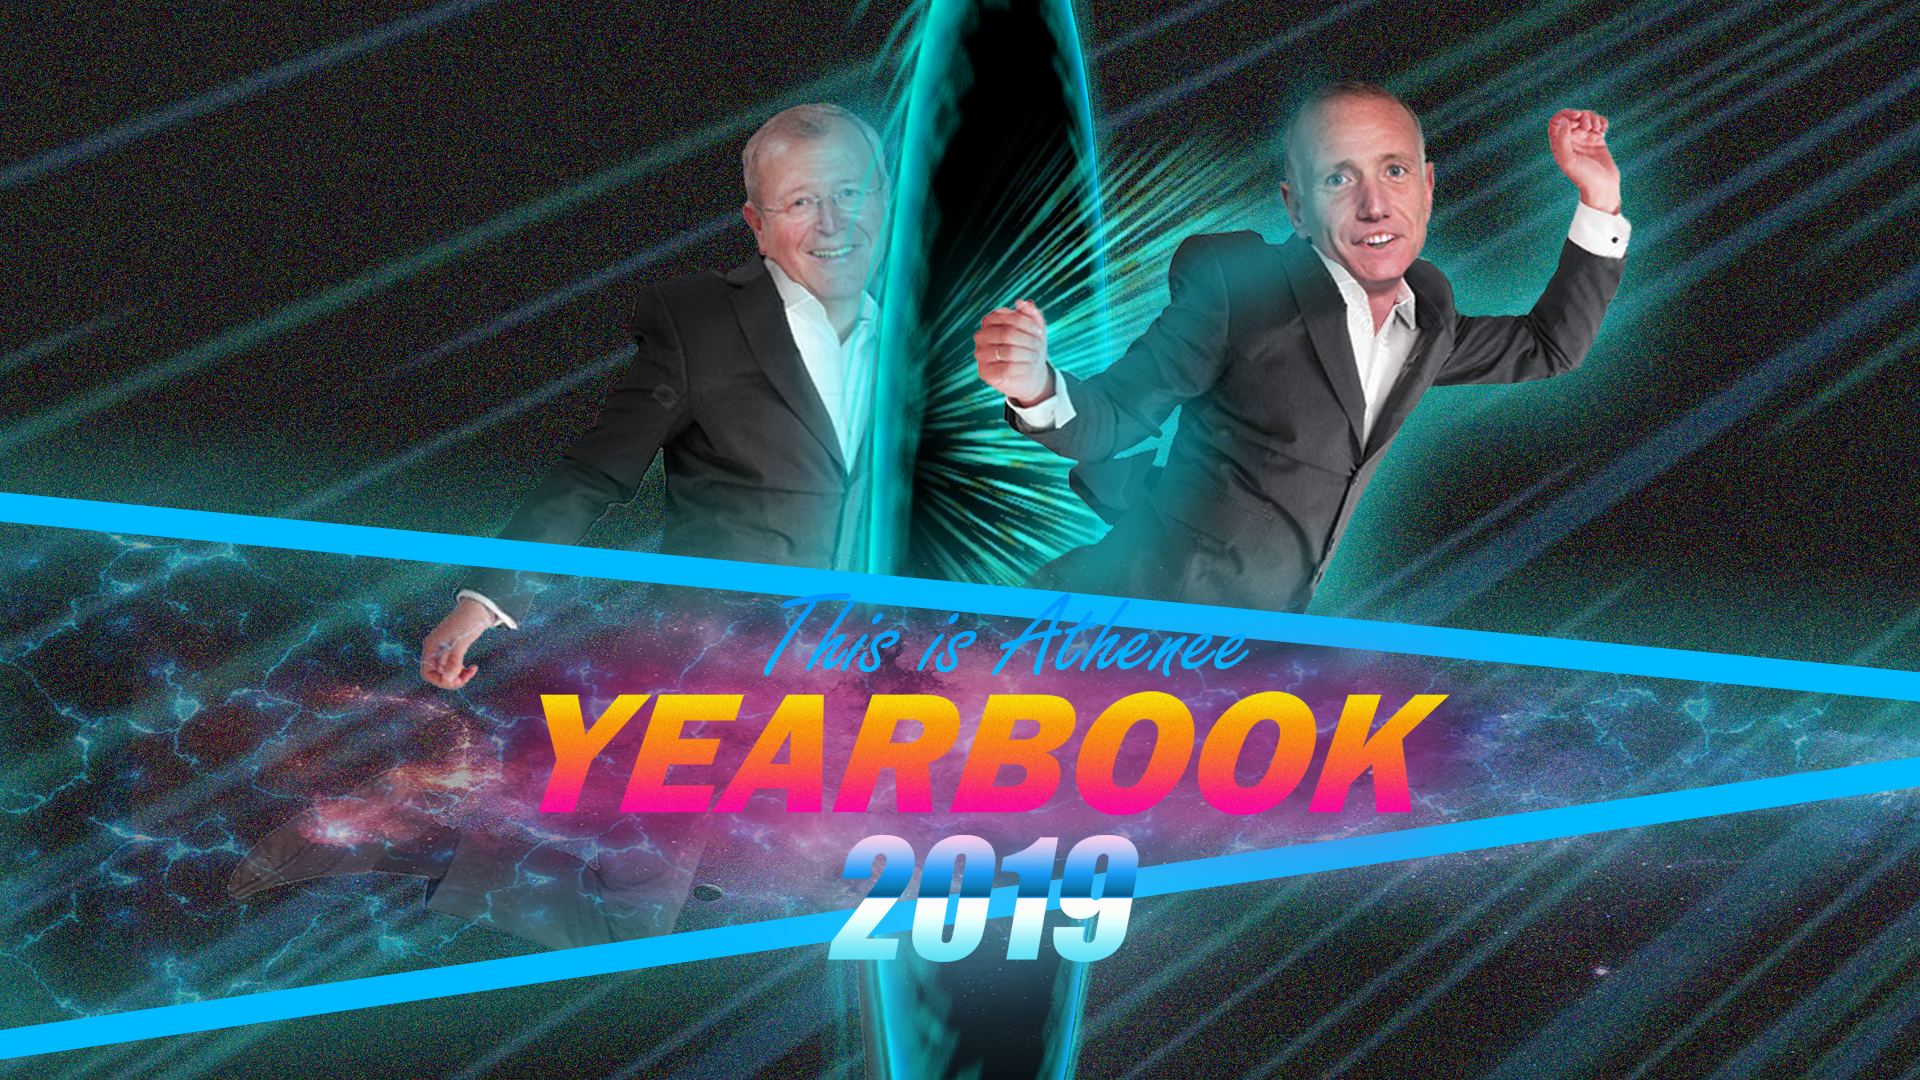 yearbook 2019